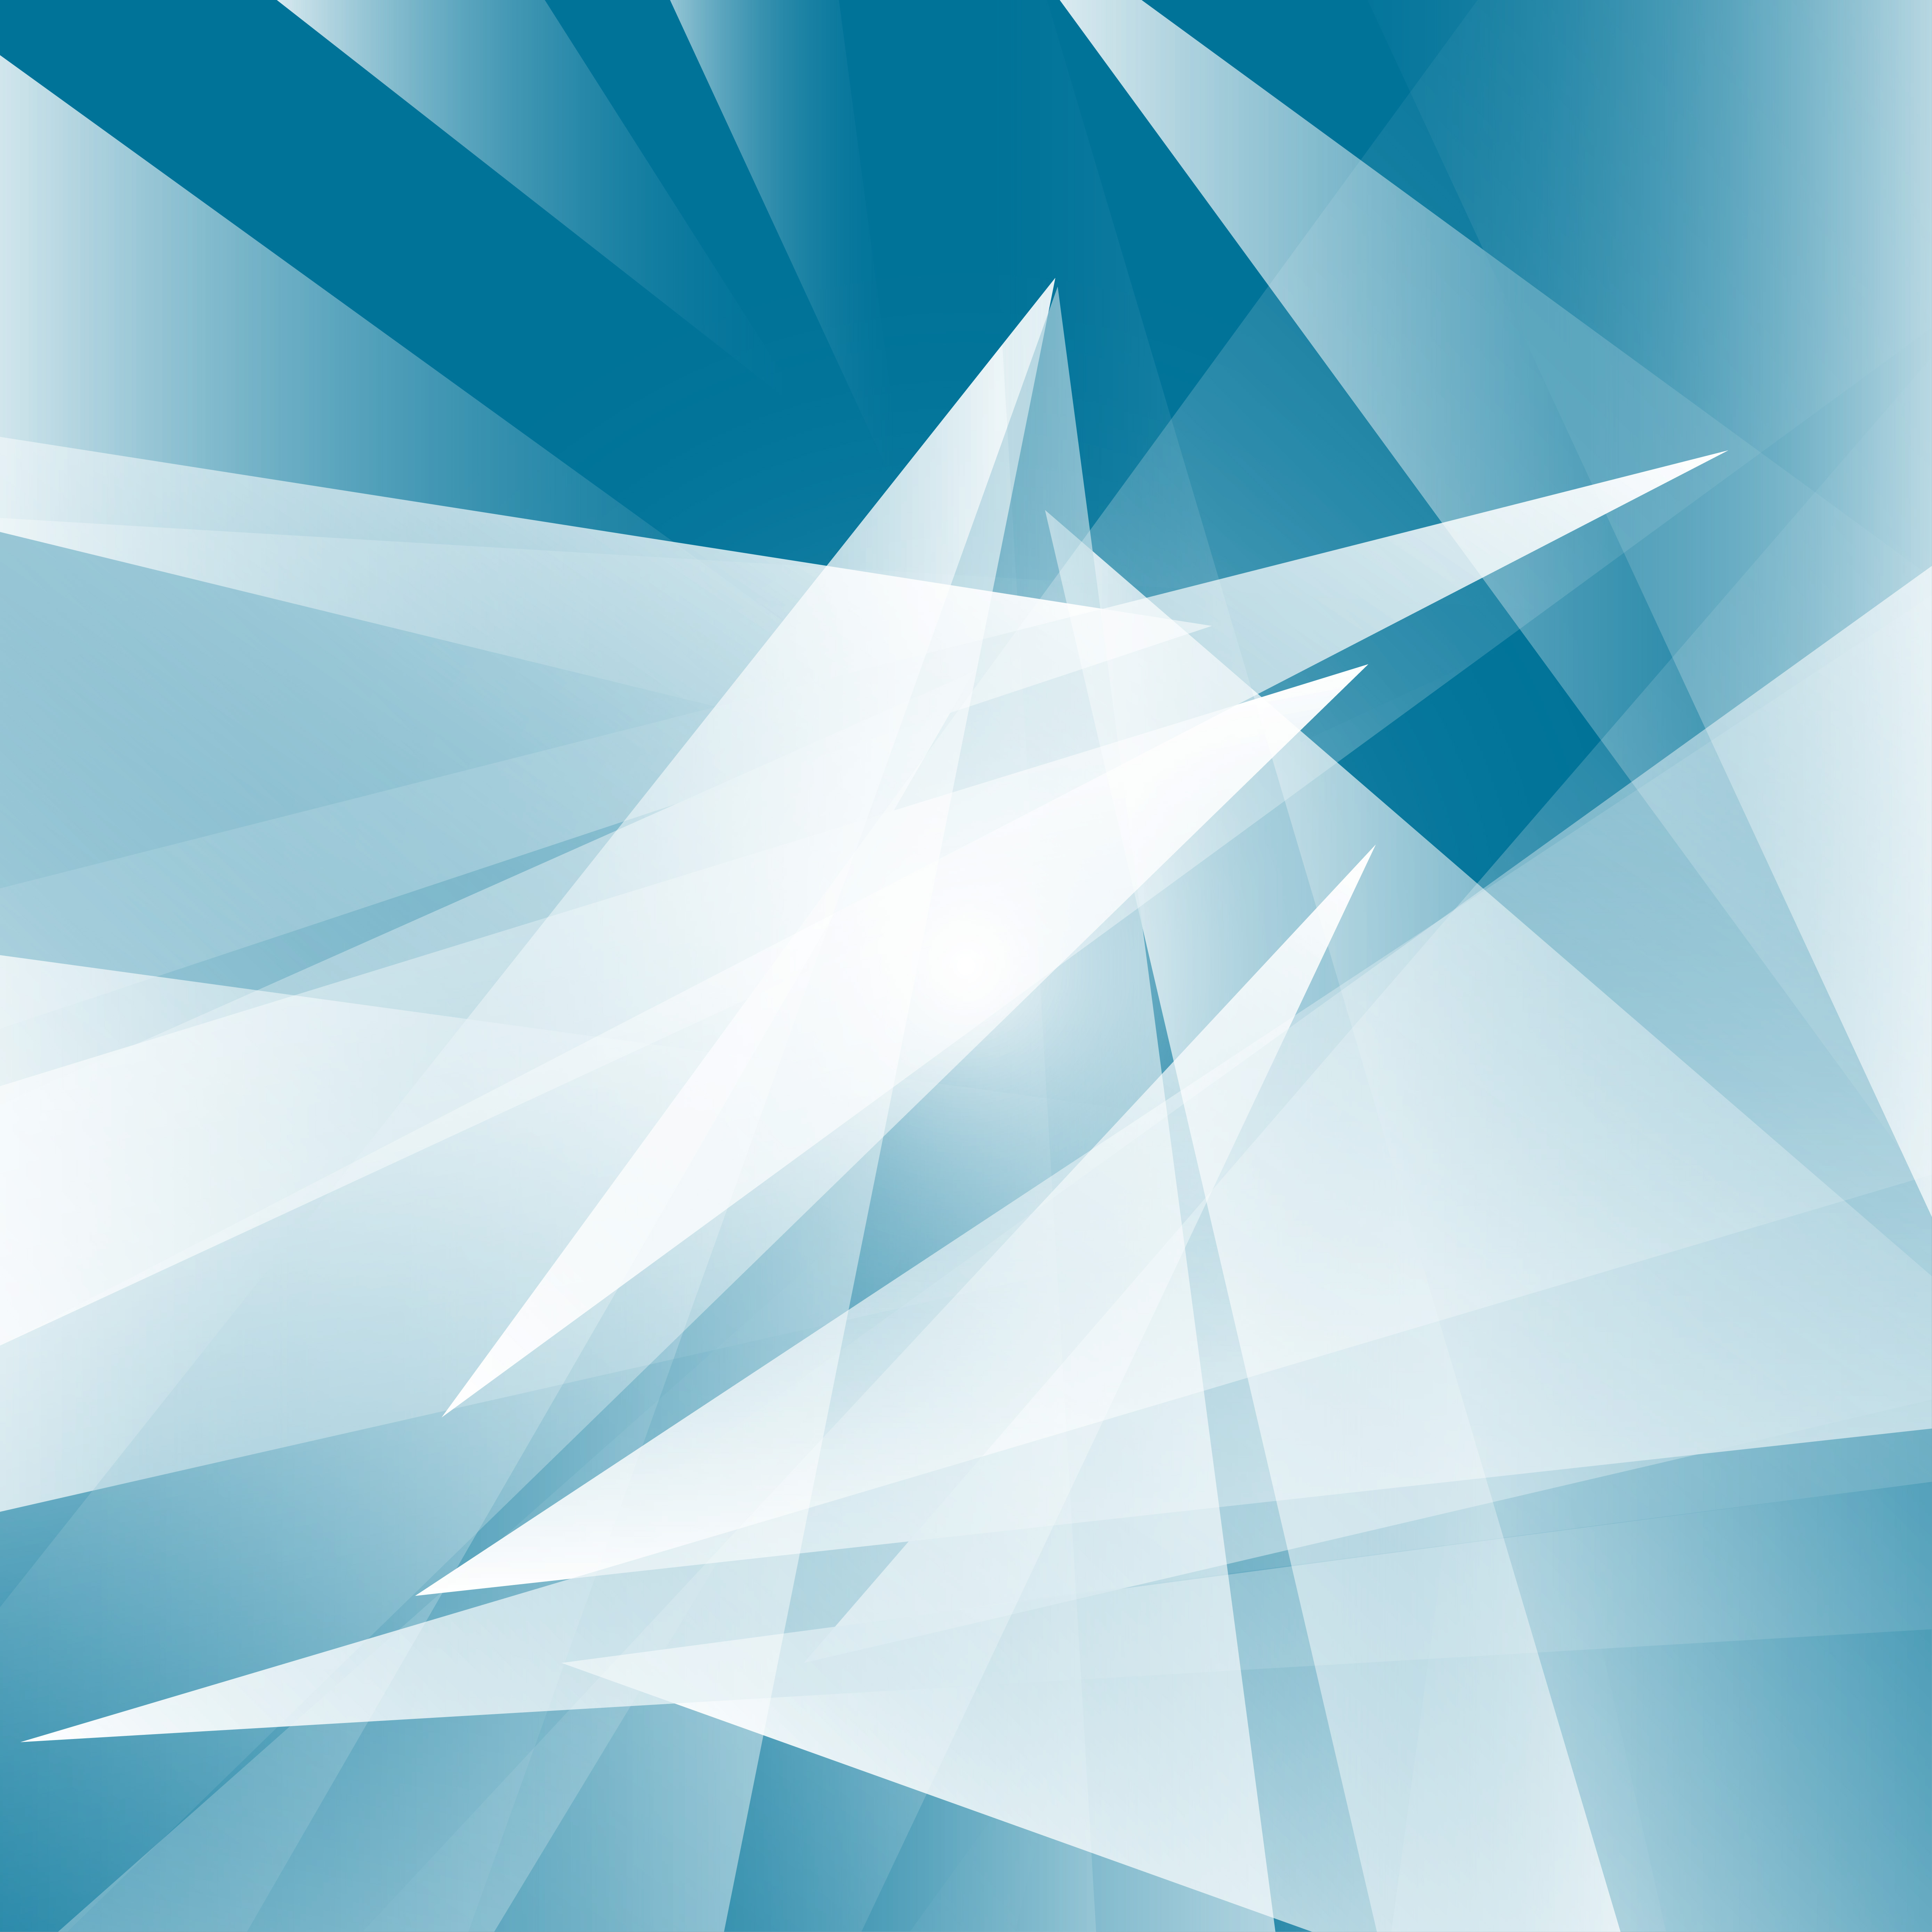 Abstract Flowers Logos: Blue Color Geometric. Triangle Shape Abstract Vector